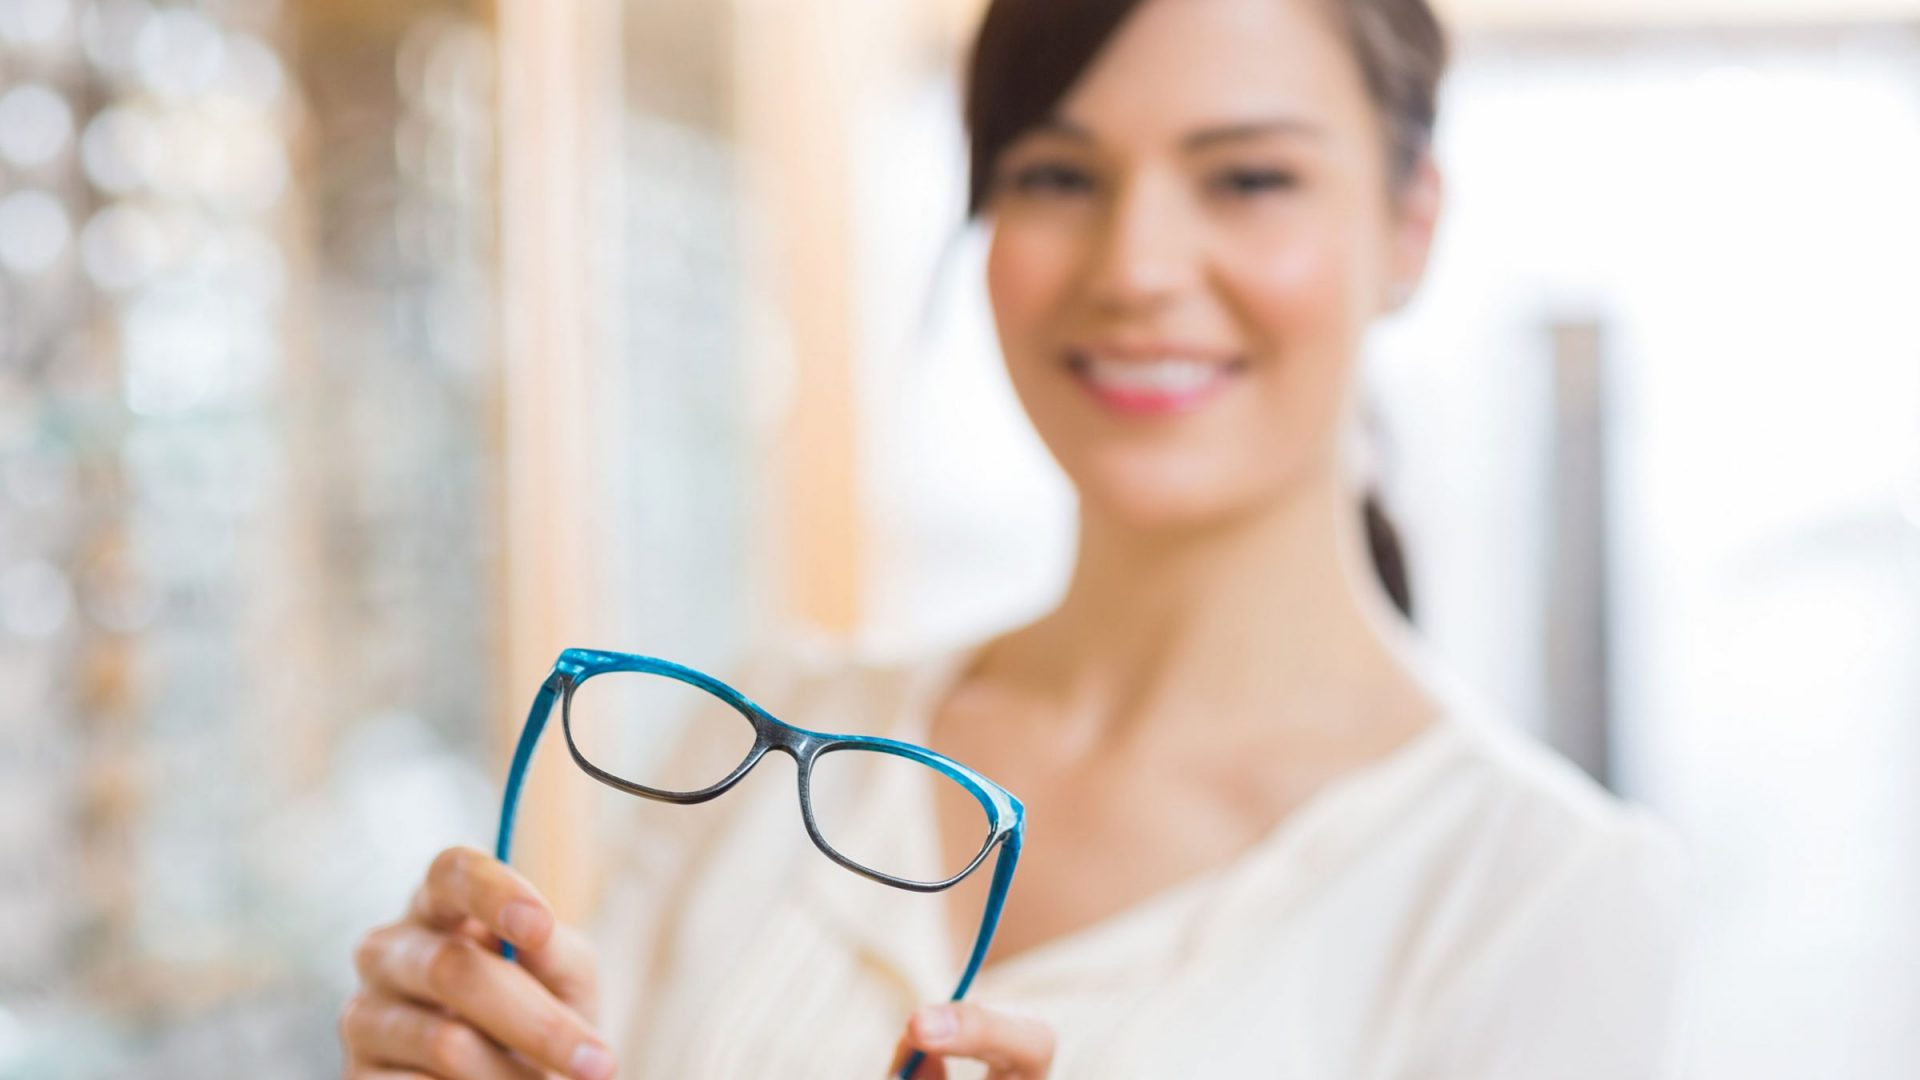 woman holding and trying on a pair of glasses